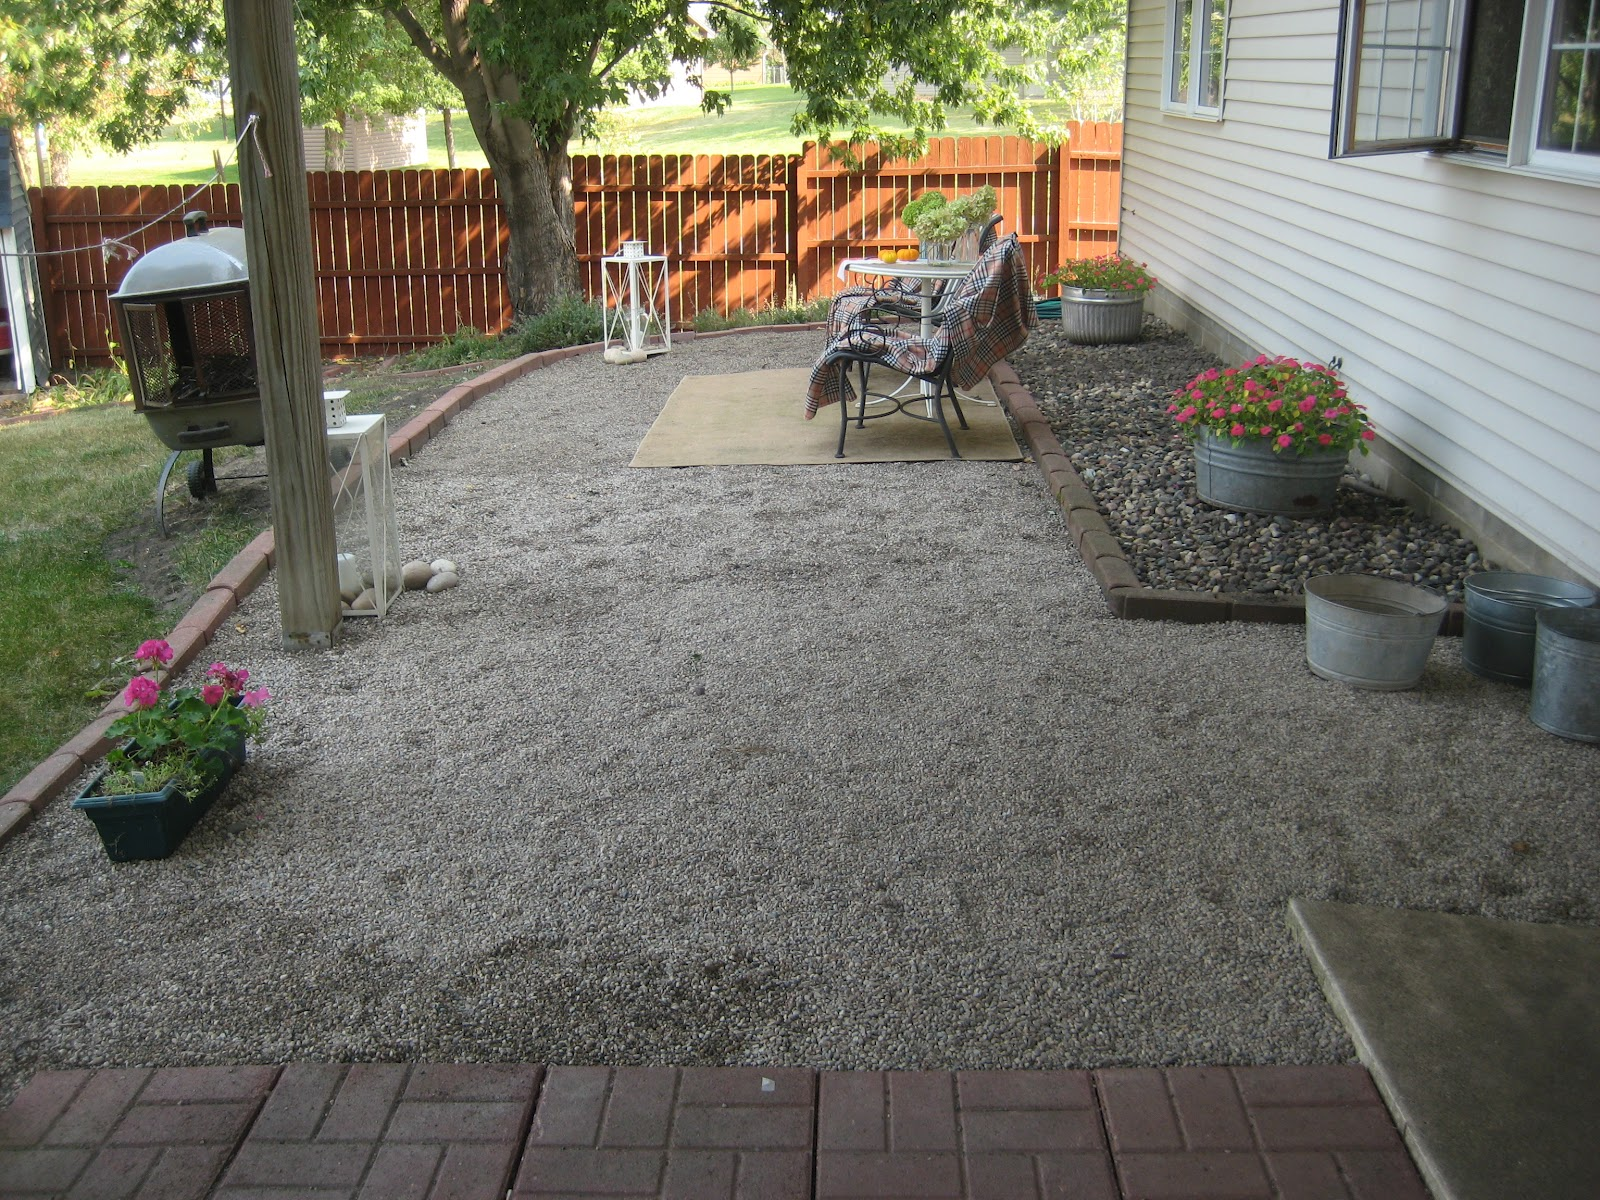 Happy At Home A New Gravel Patio. Patio Fire Pit Table And Chairs. Outdoor Furniture Wholesale Online. Best Cheap Patio Ideas. Patio Furniture Repair Sling Replacement. High Top Patio Sets On Sale. Patio Furniture Covers Sam's Club. Outdoor Aluminum Furniture On Sale. Patio Furniture Lebanon Nj